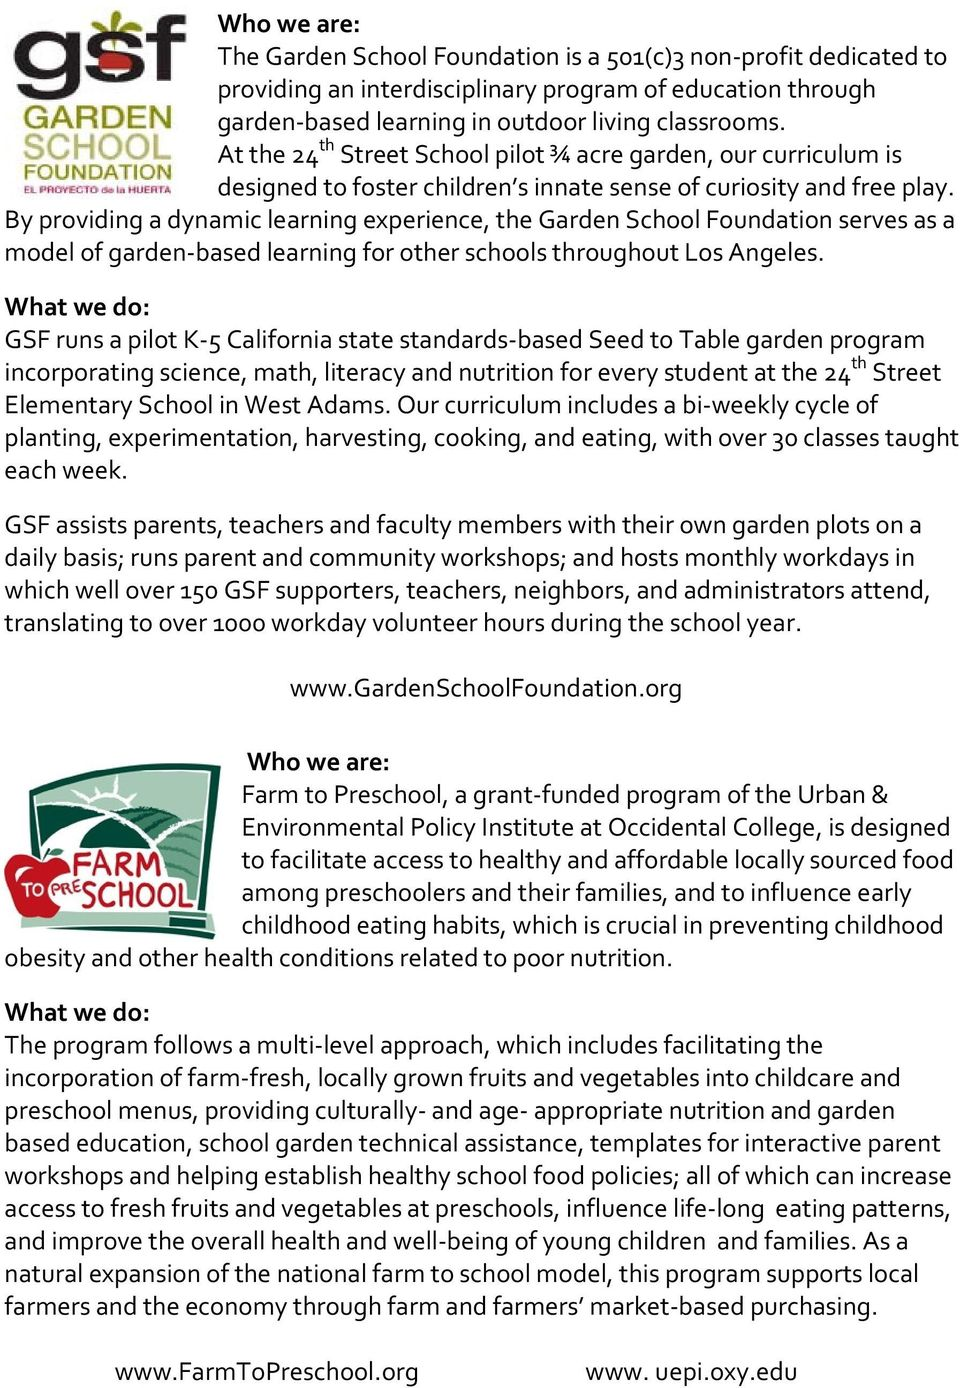 By providing a dynamic learning experience, the Garden School Foundation serves as a model of garden-based learning for other schools throughout Los Angeles.